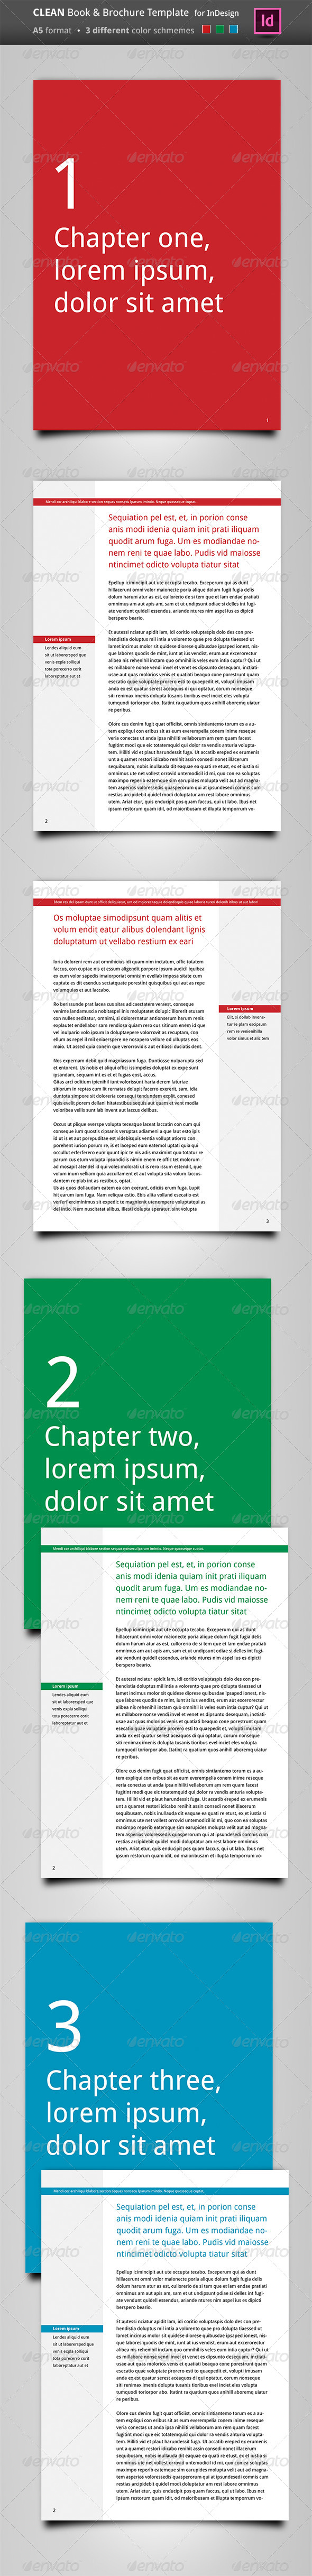 GraphicRiver Clean Book & Brochure Template 4637396